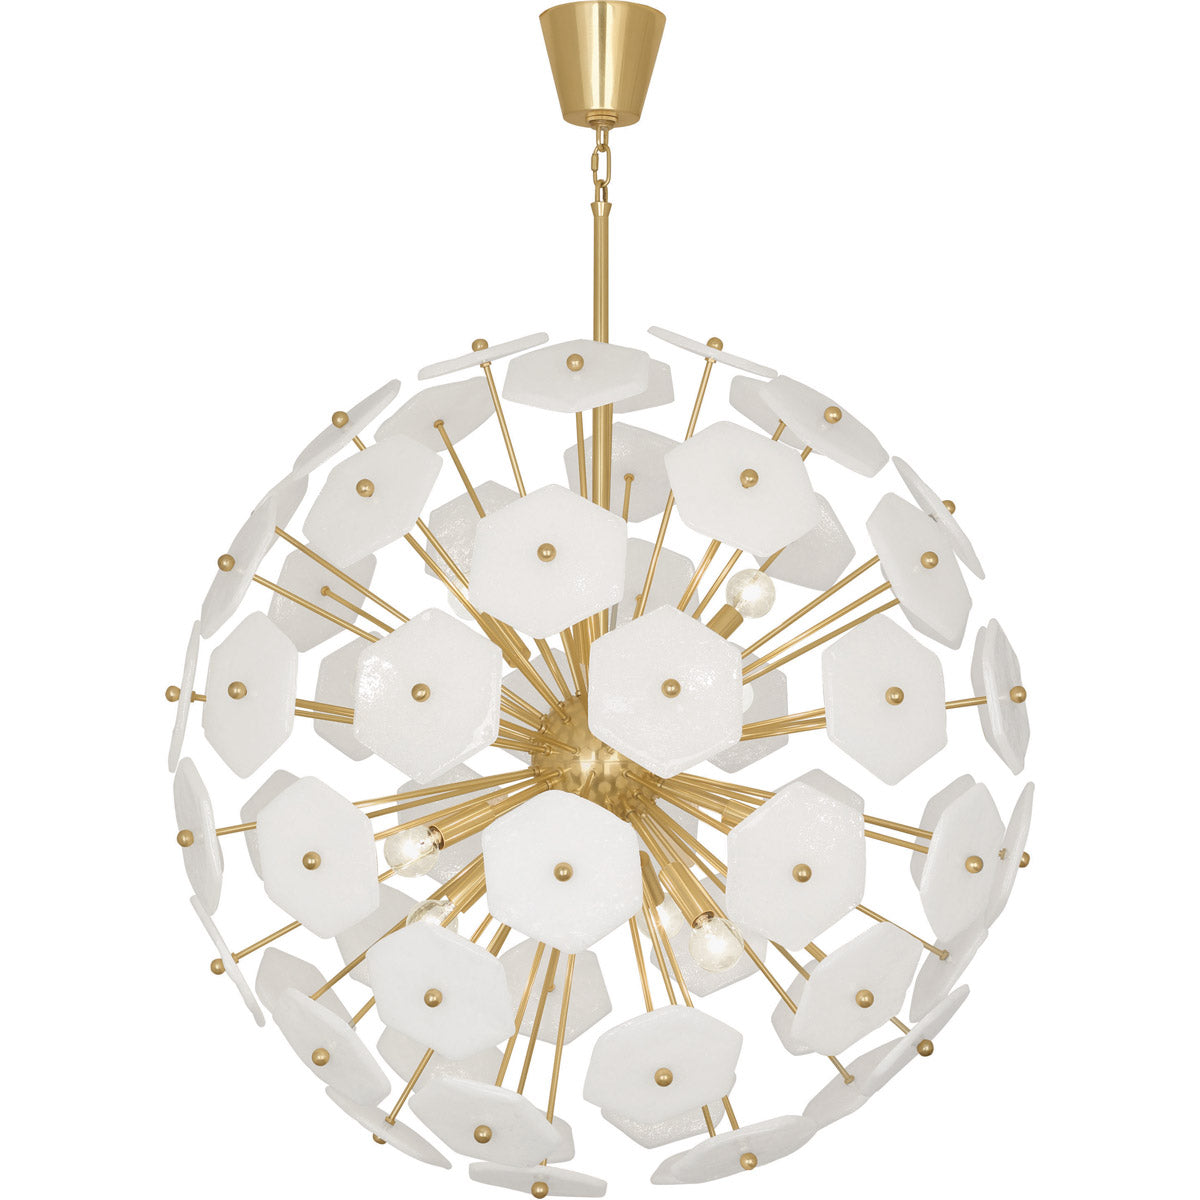 50 Staircases That Expertly Mix Function And Style: Jonathan Adler Vienna Large Globe Chandelier Brass